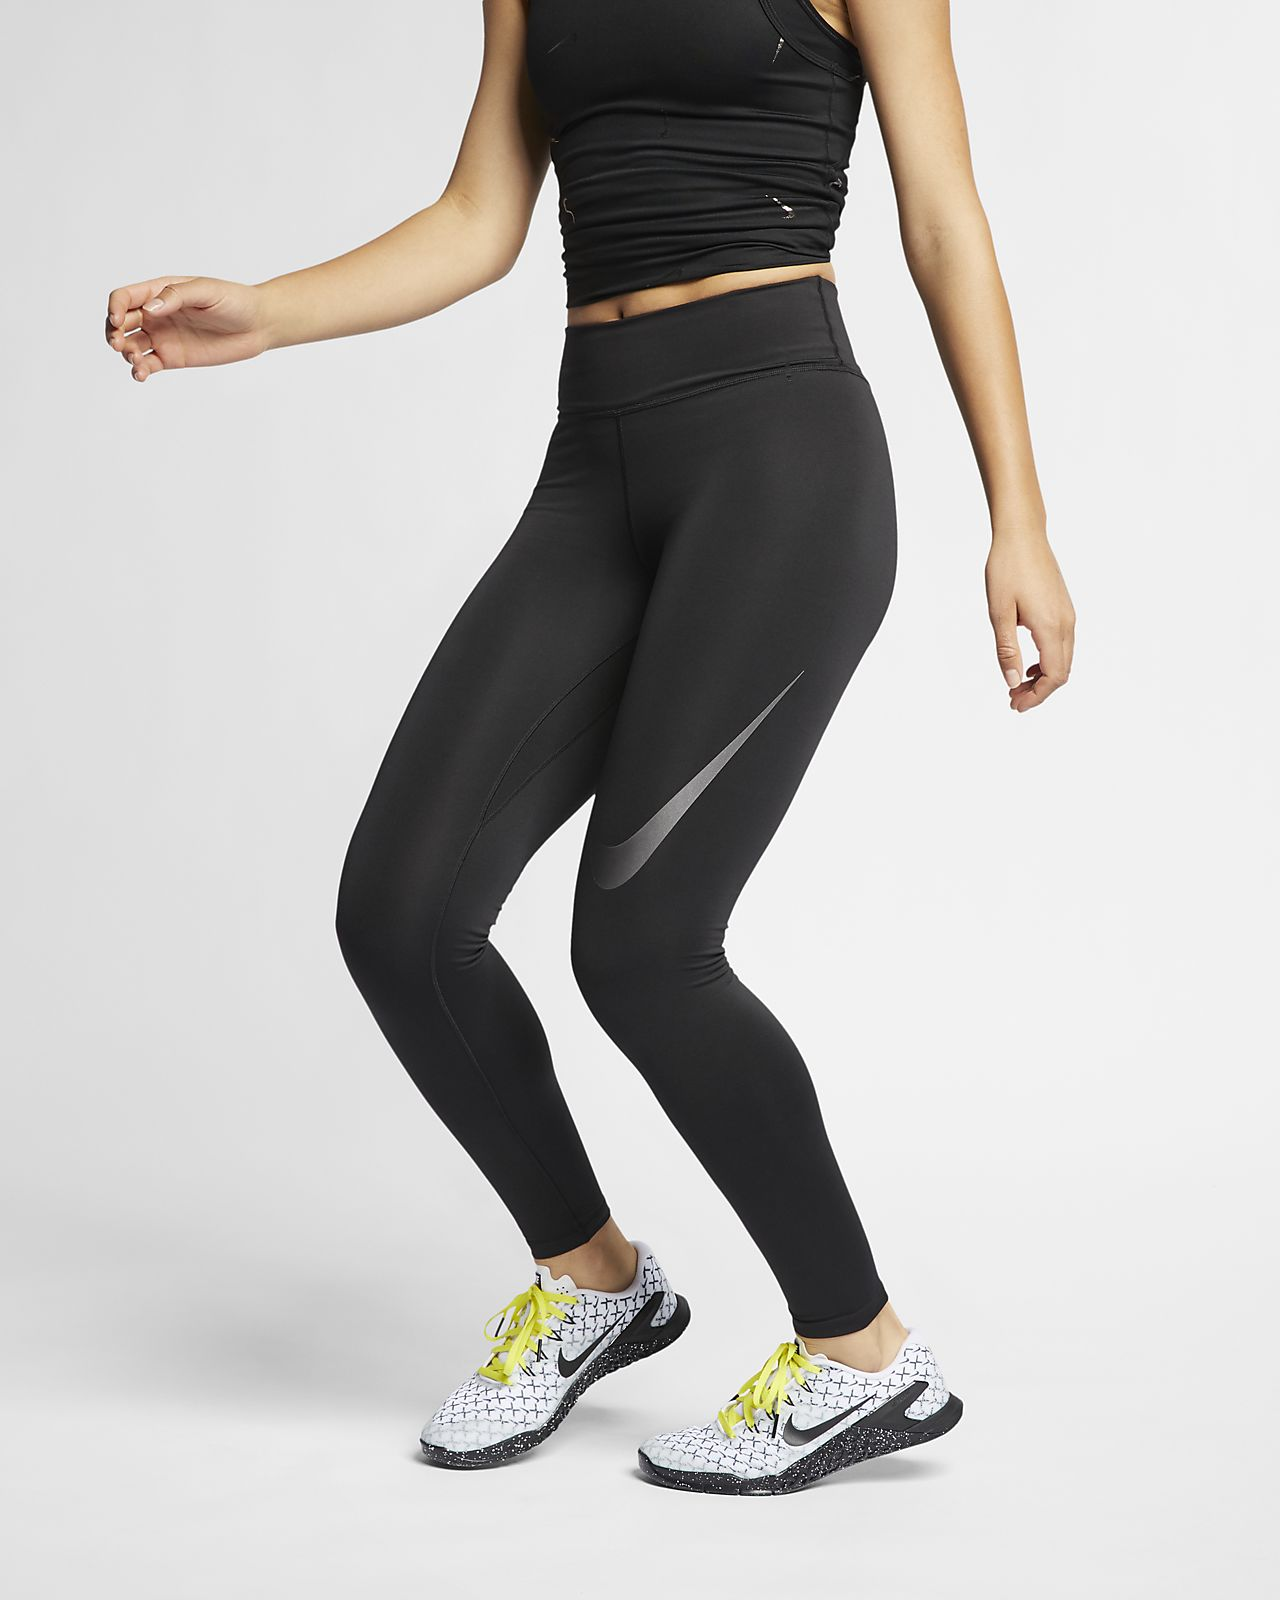 d06973f4d2 Nike One Women s Training Tights. Nike.com ID